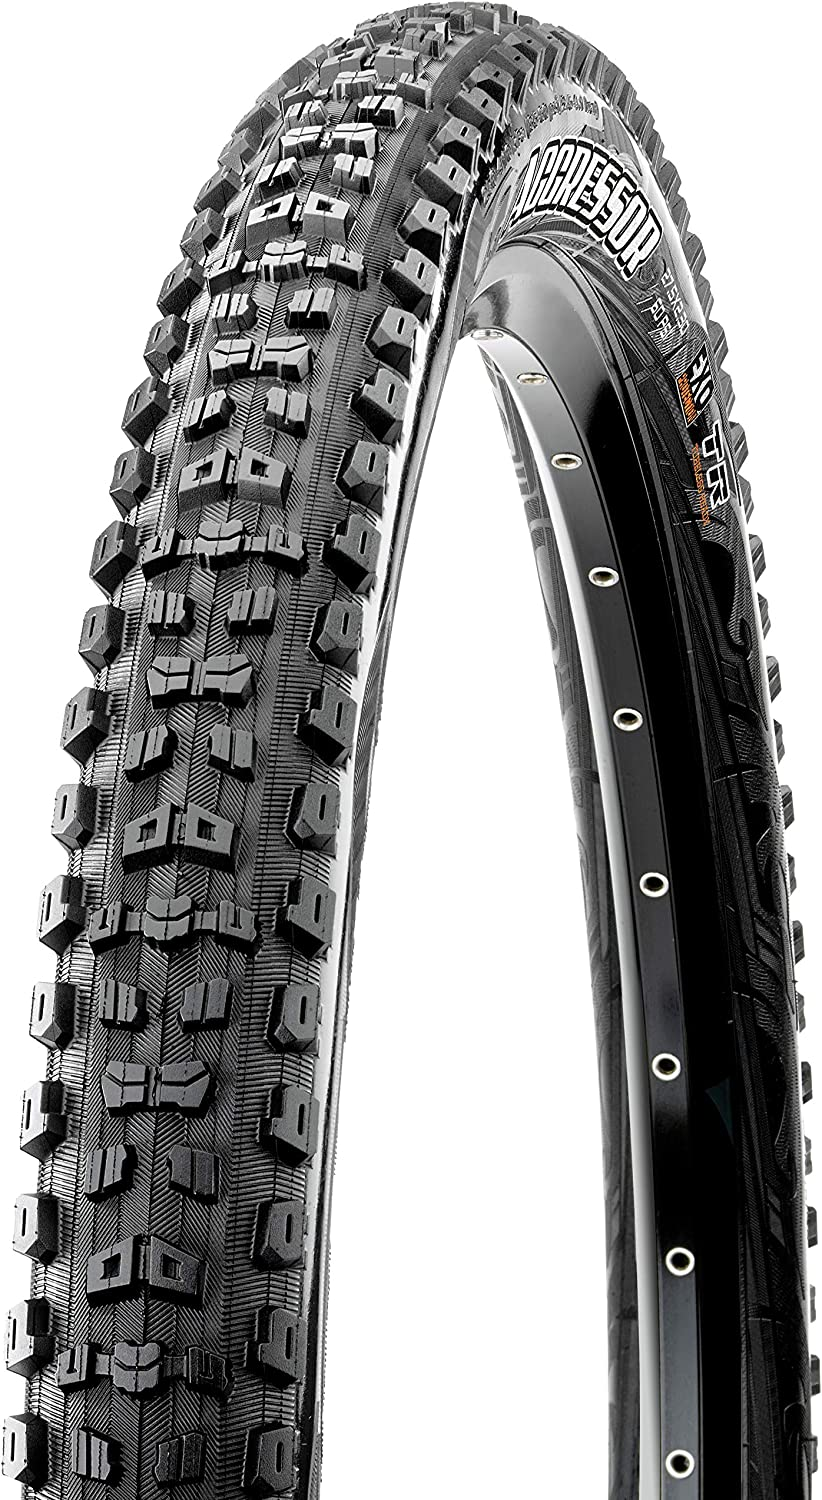 Maxxis Aggressor Mountain Bike Tire